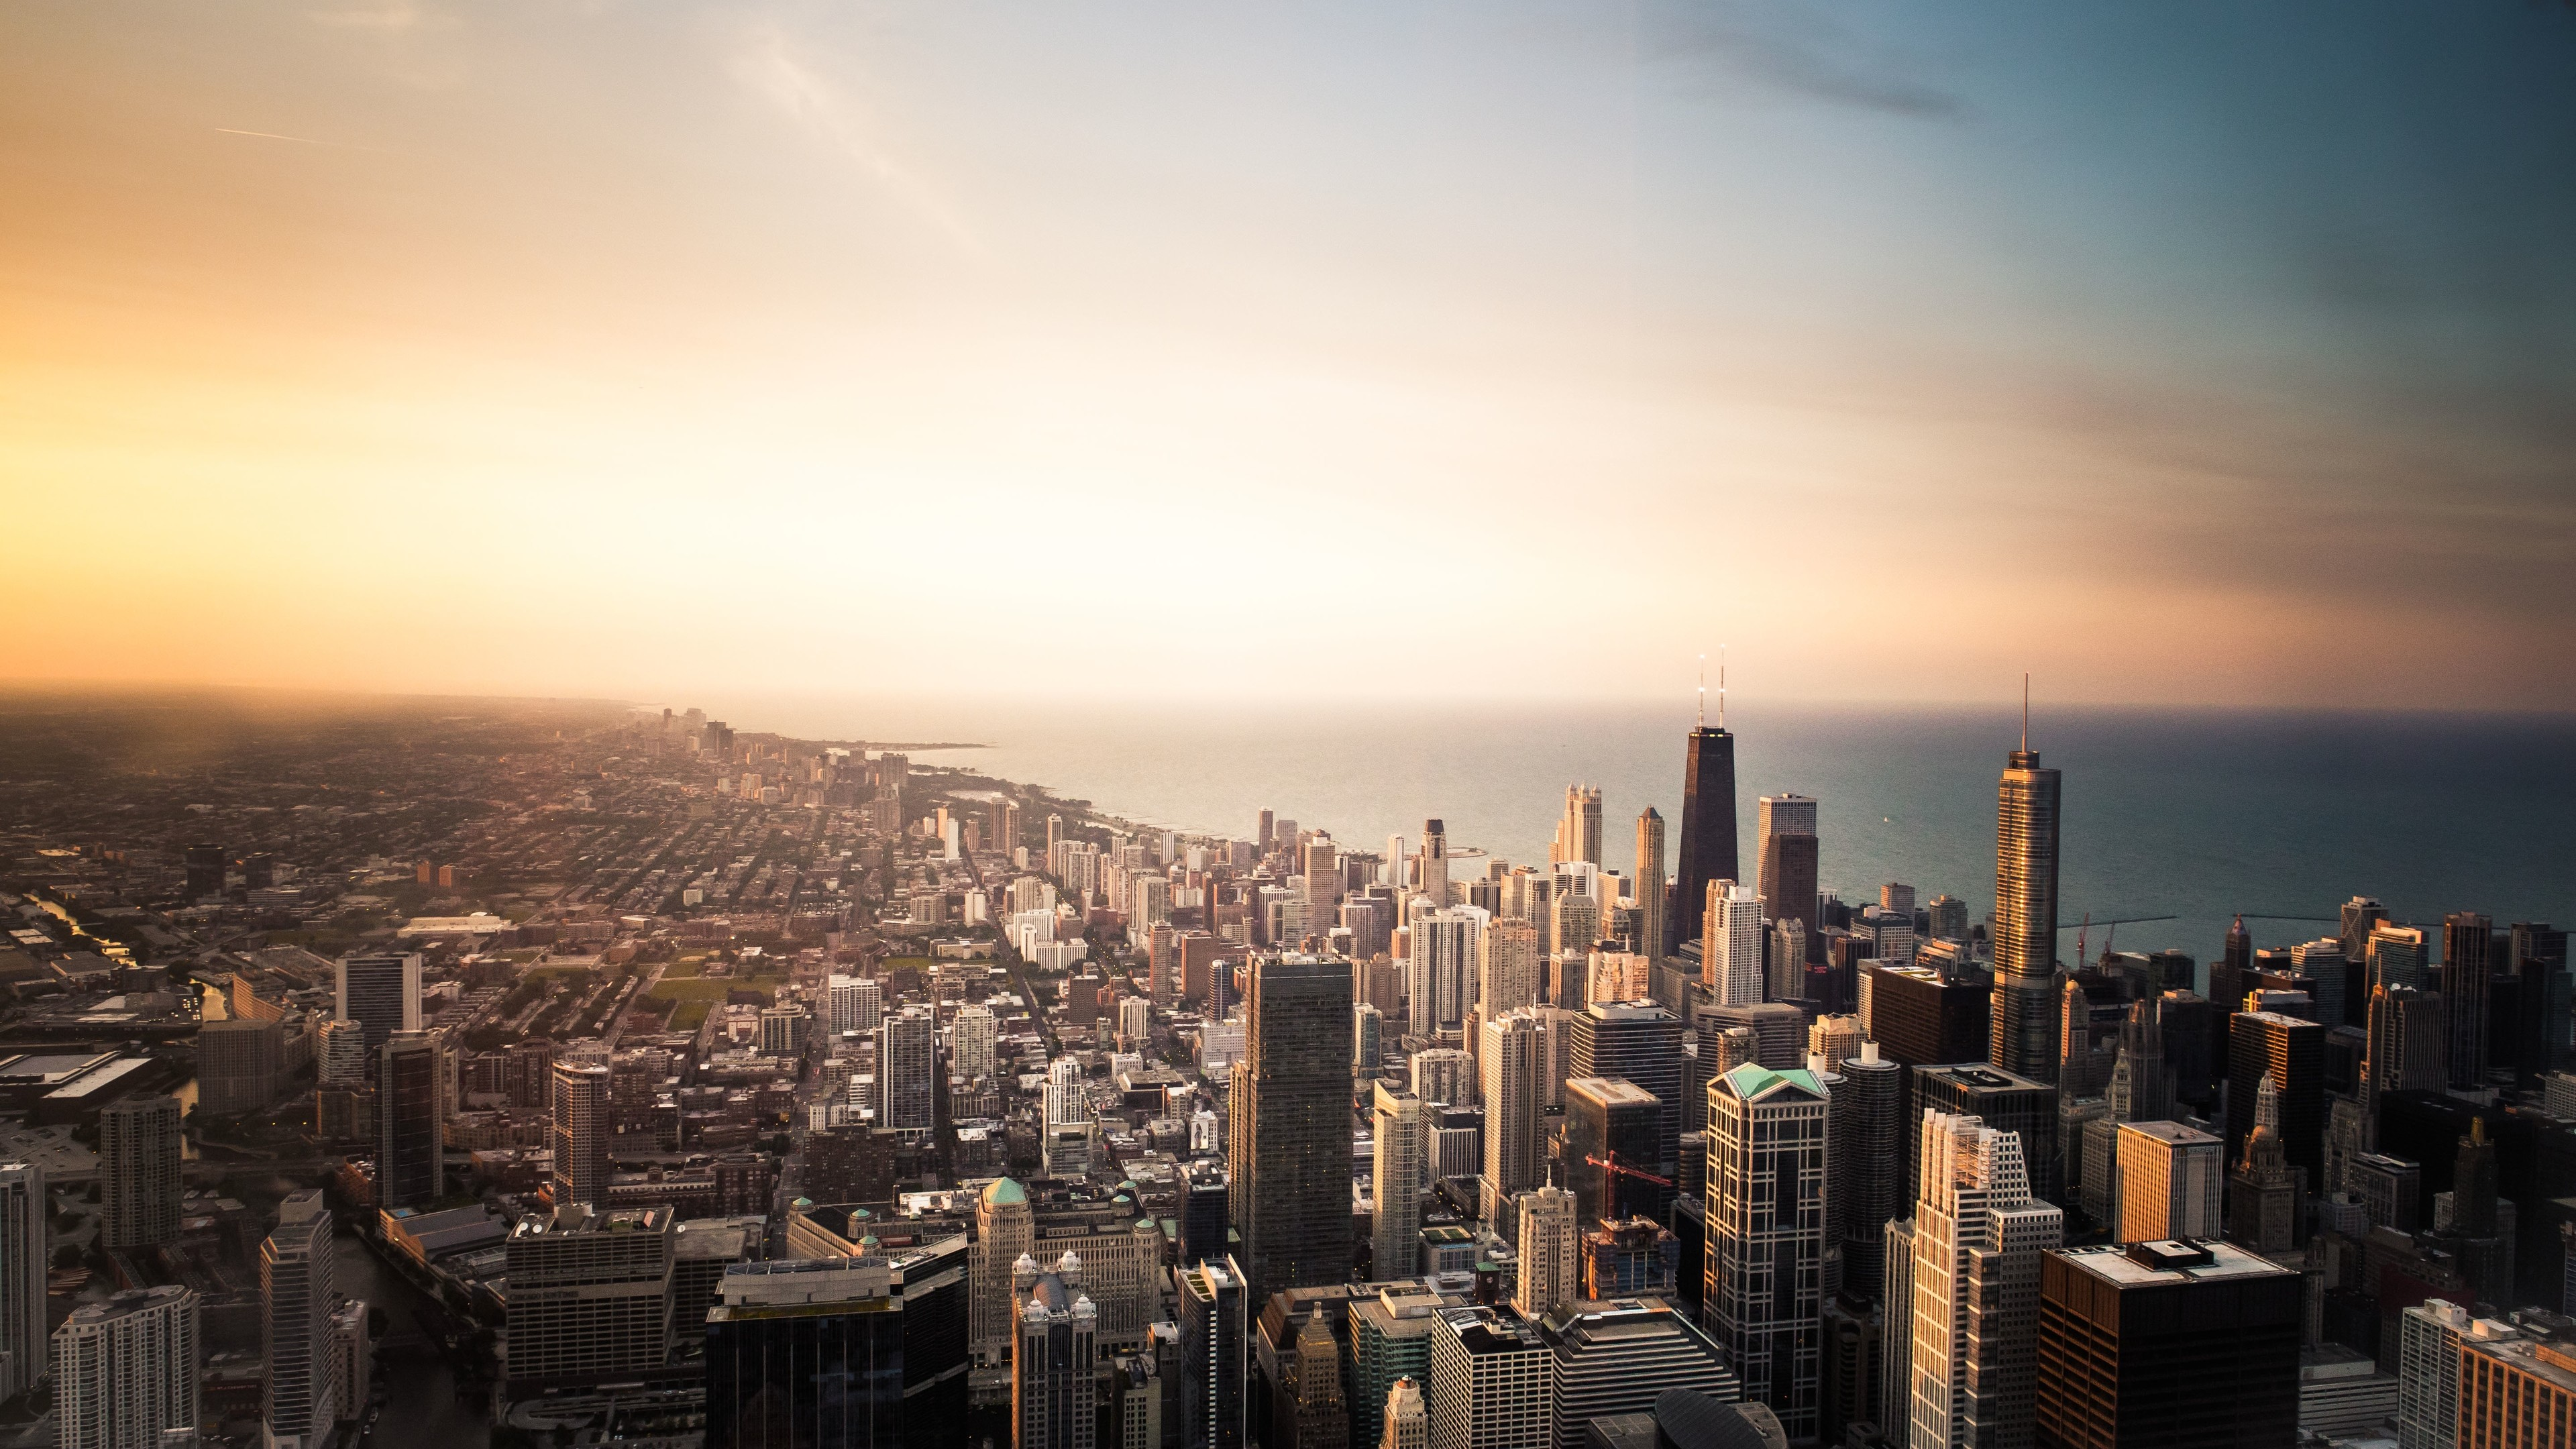 chicago cityscape buildings sea 5k 1538070277 - Chicago Cityscape Buildings Sea 5k - sea wallpapers, photography wallpapers, hd-wallpapers, cityscape wallpapers, chicago wallpapers, buildings wallpapers, 5k wallpapers, 4k-wallpapers